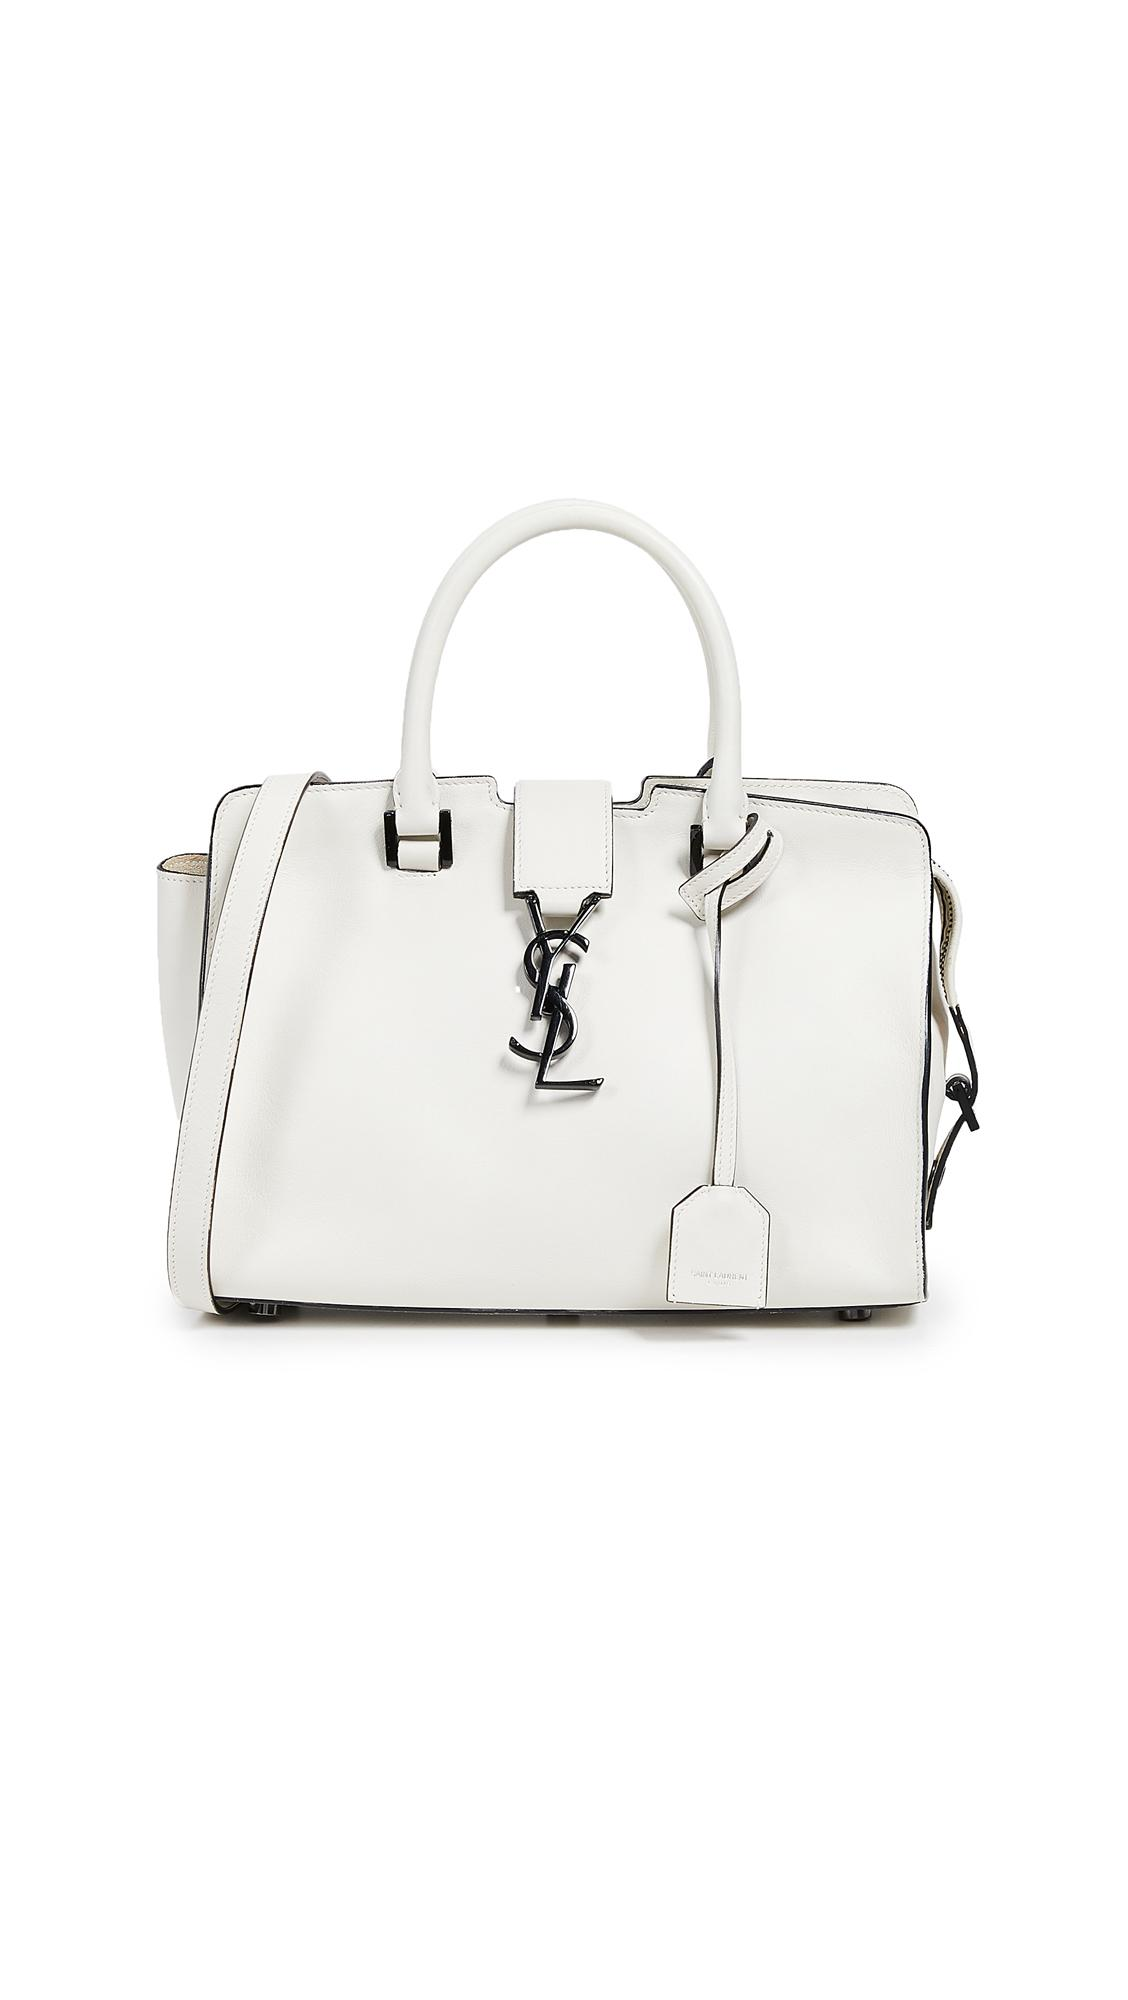 7c05a52db393 Lyst - What Goes Around Comes Around Ysl White Leather Baby Cabas ...